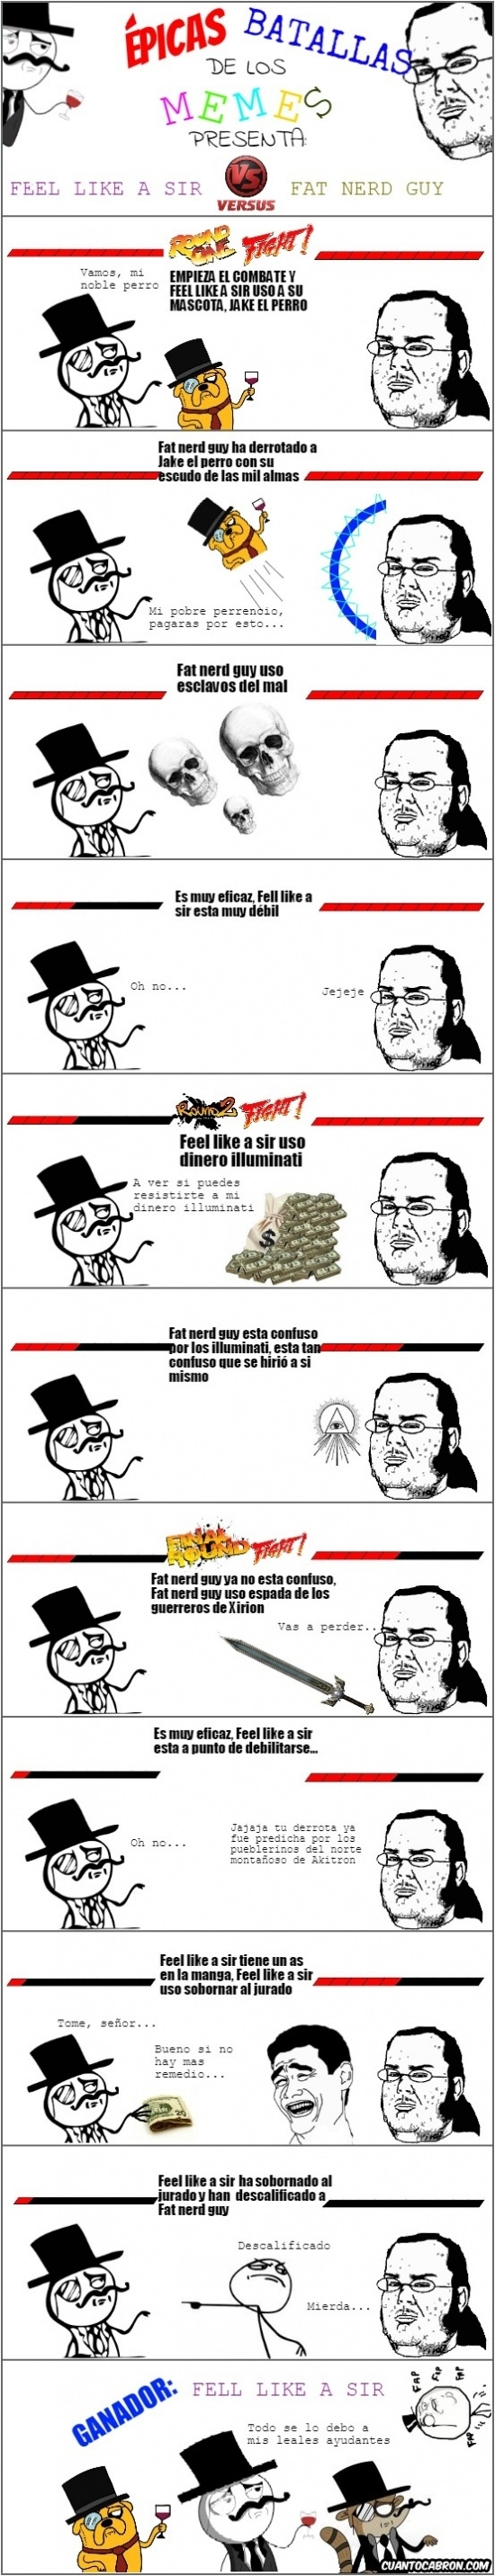 Mix - Épicas batallas de los memes: Feel like a sir vs. Friki